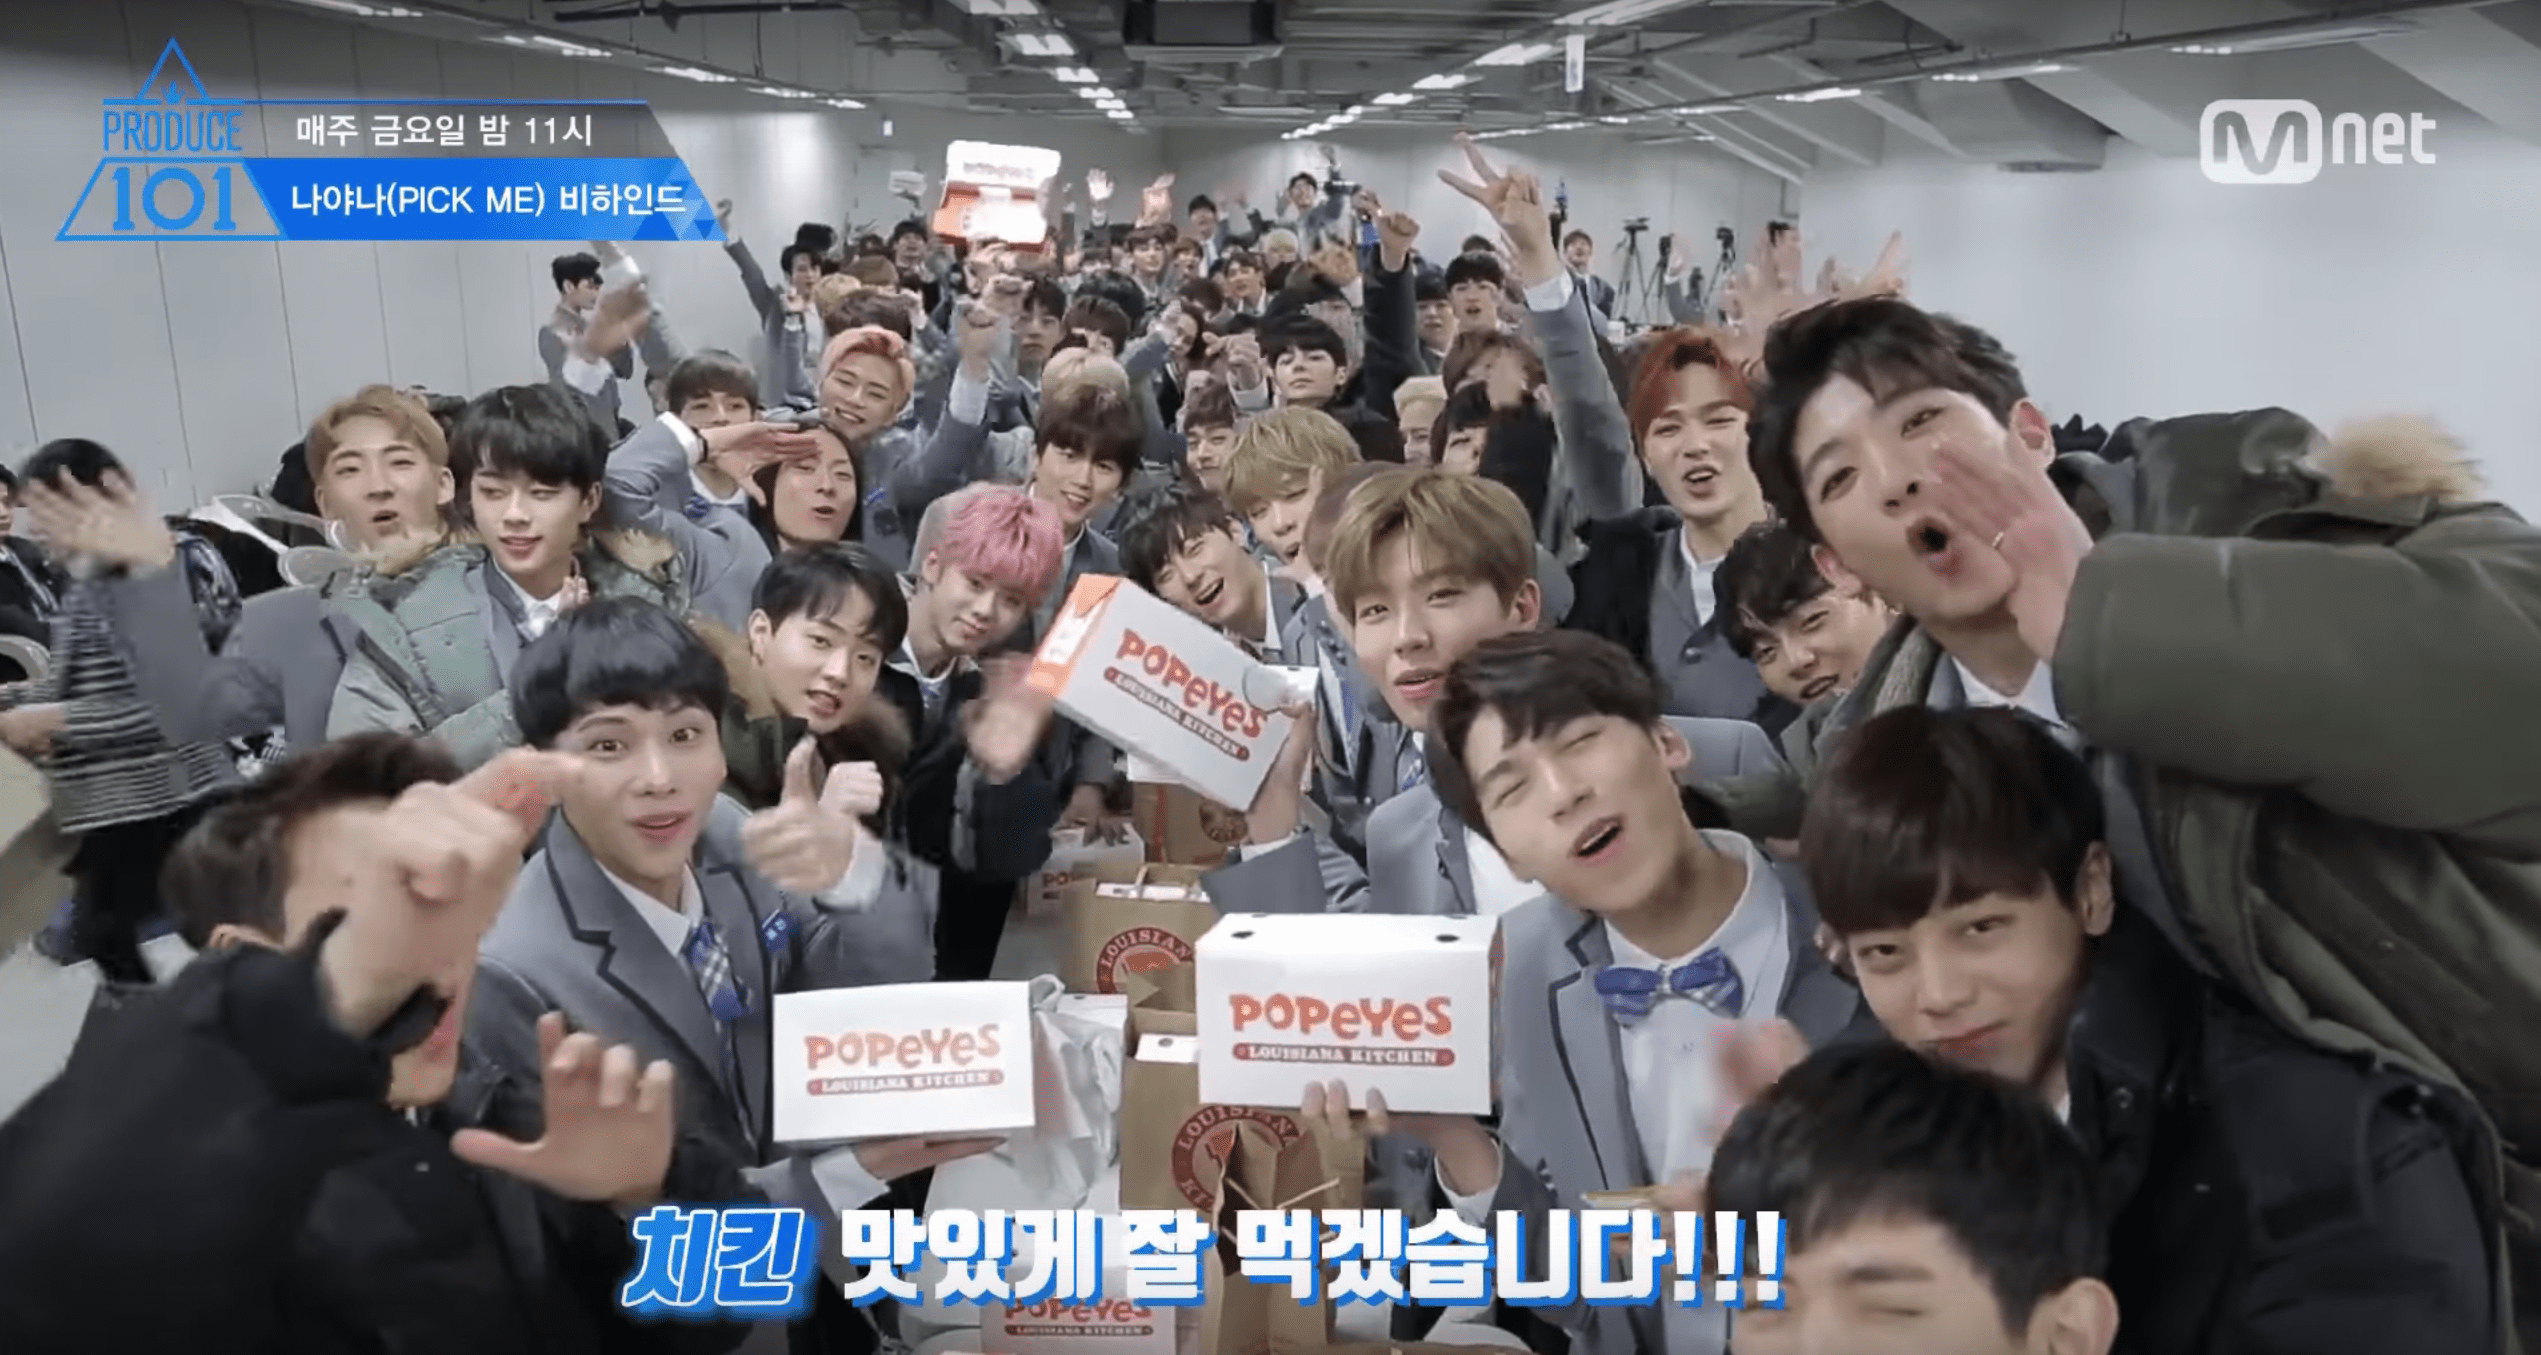 Watch: Produce 101 Season 2 Releases Behind-The-Scenes Look At Their Pick Me Performance On M!Countdown